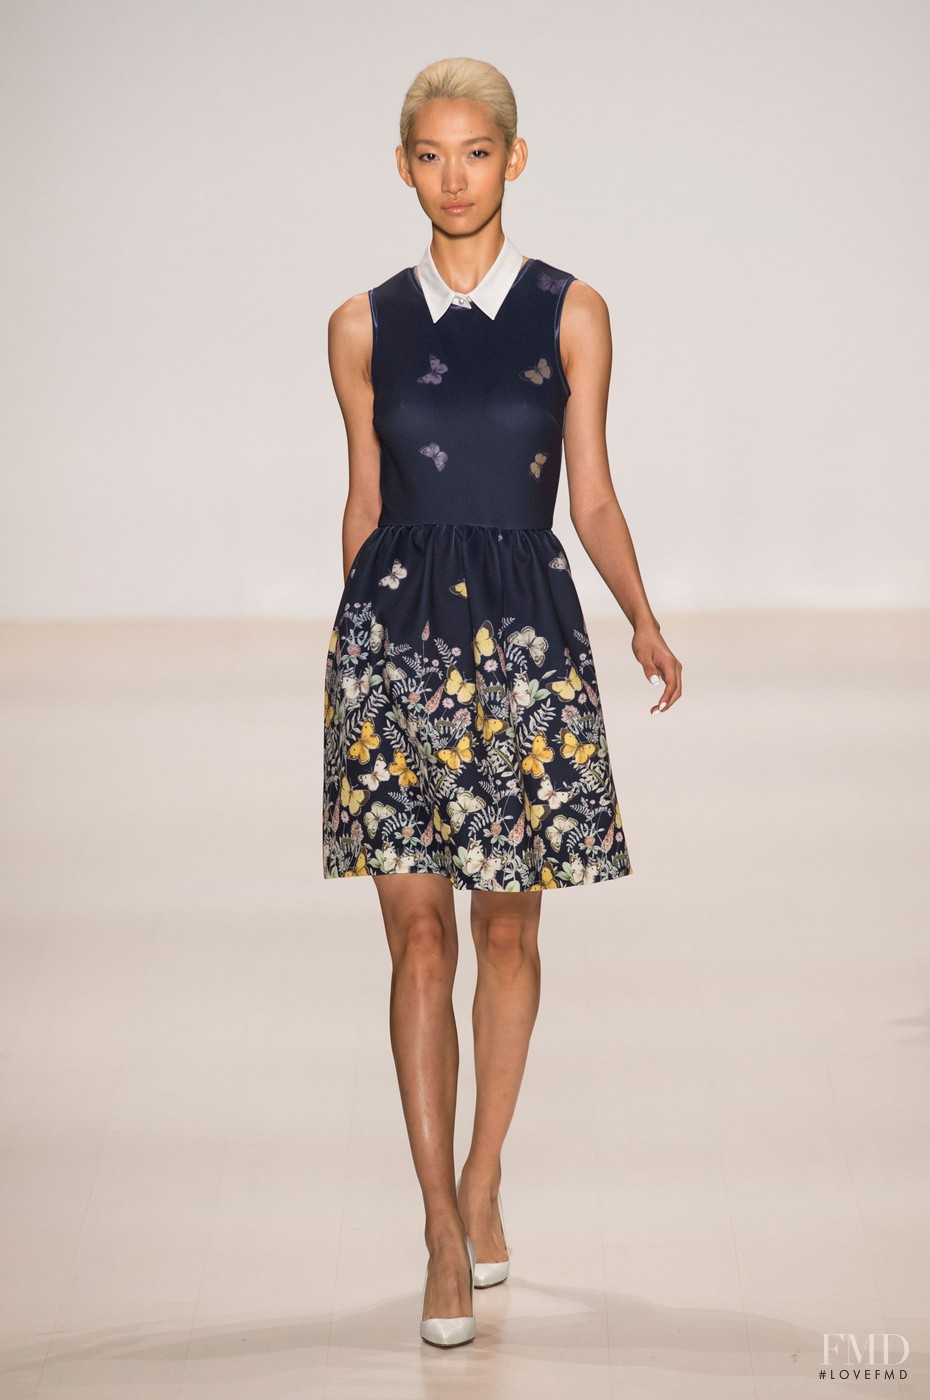 Erin fetherston fashion show Farfetch - For the Love of Fashion